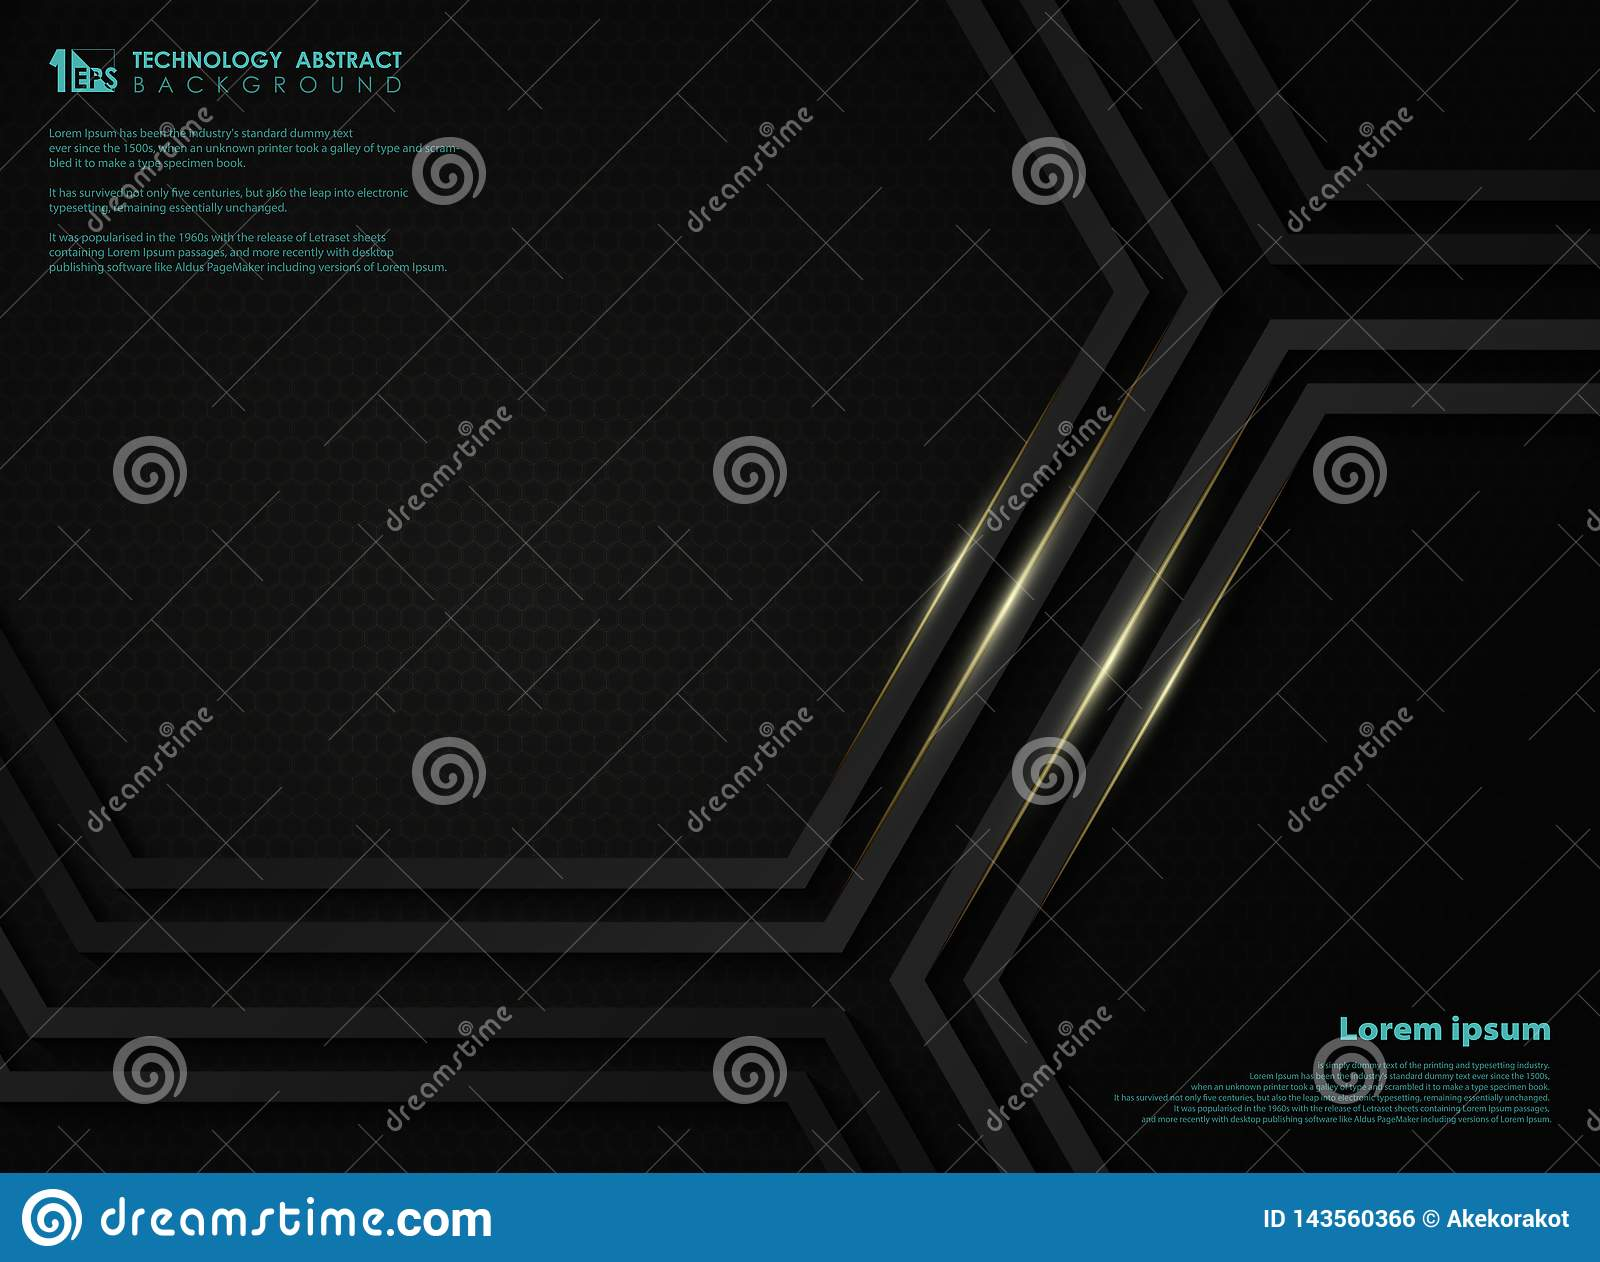 Abstract black metallic technology hexagon background with golden line for presentation. illustration vector eps10